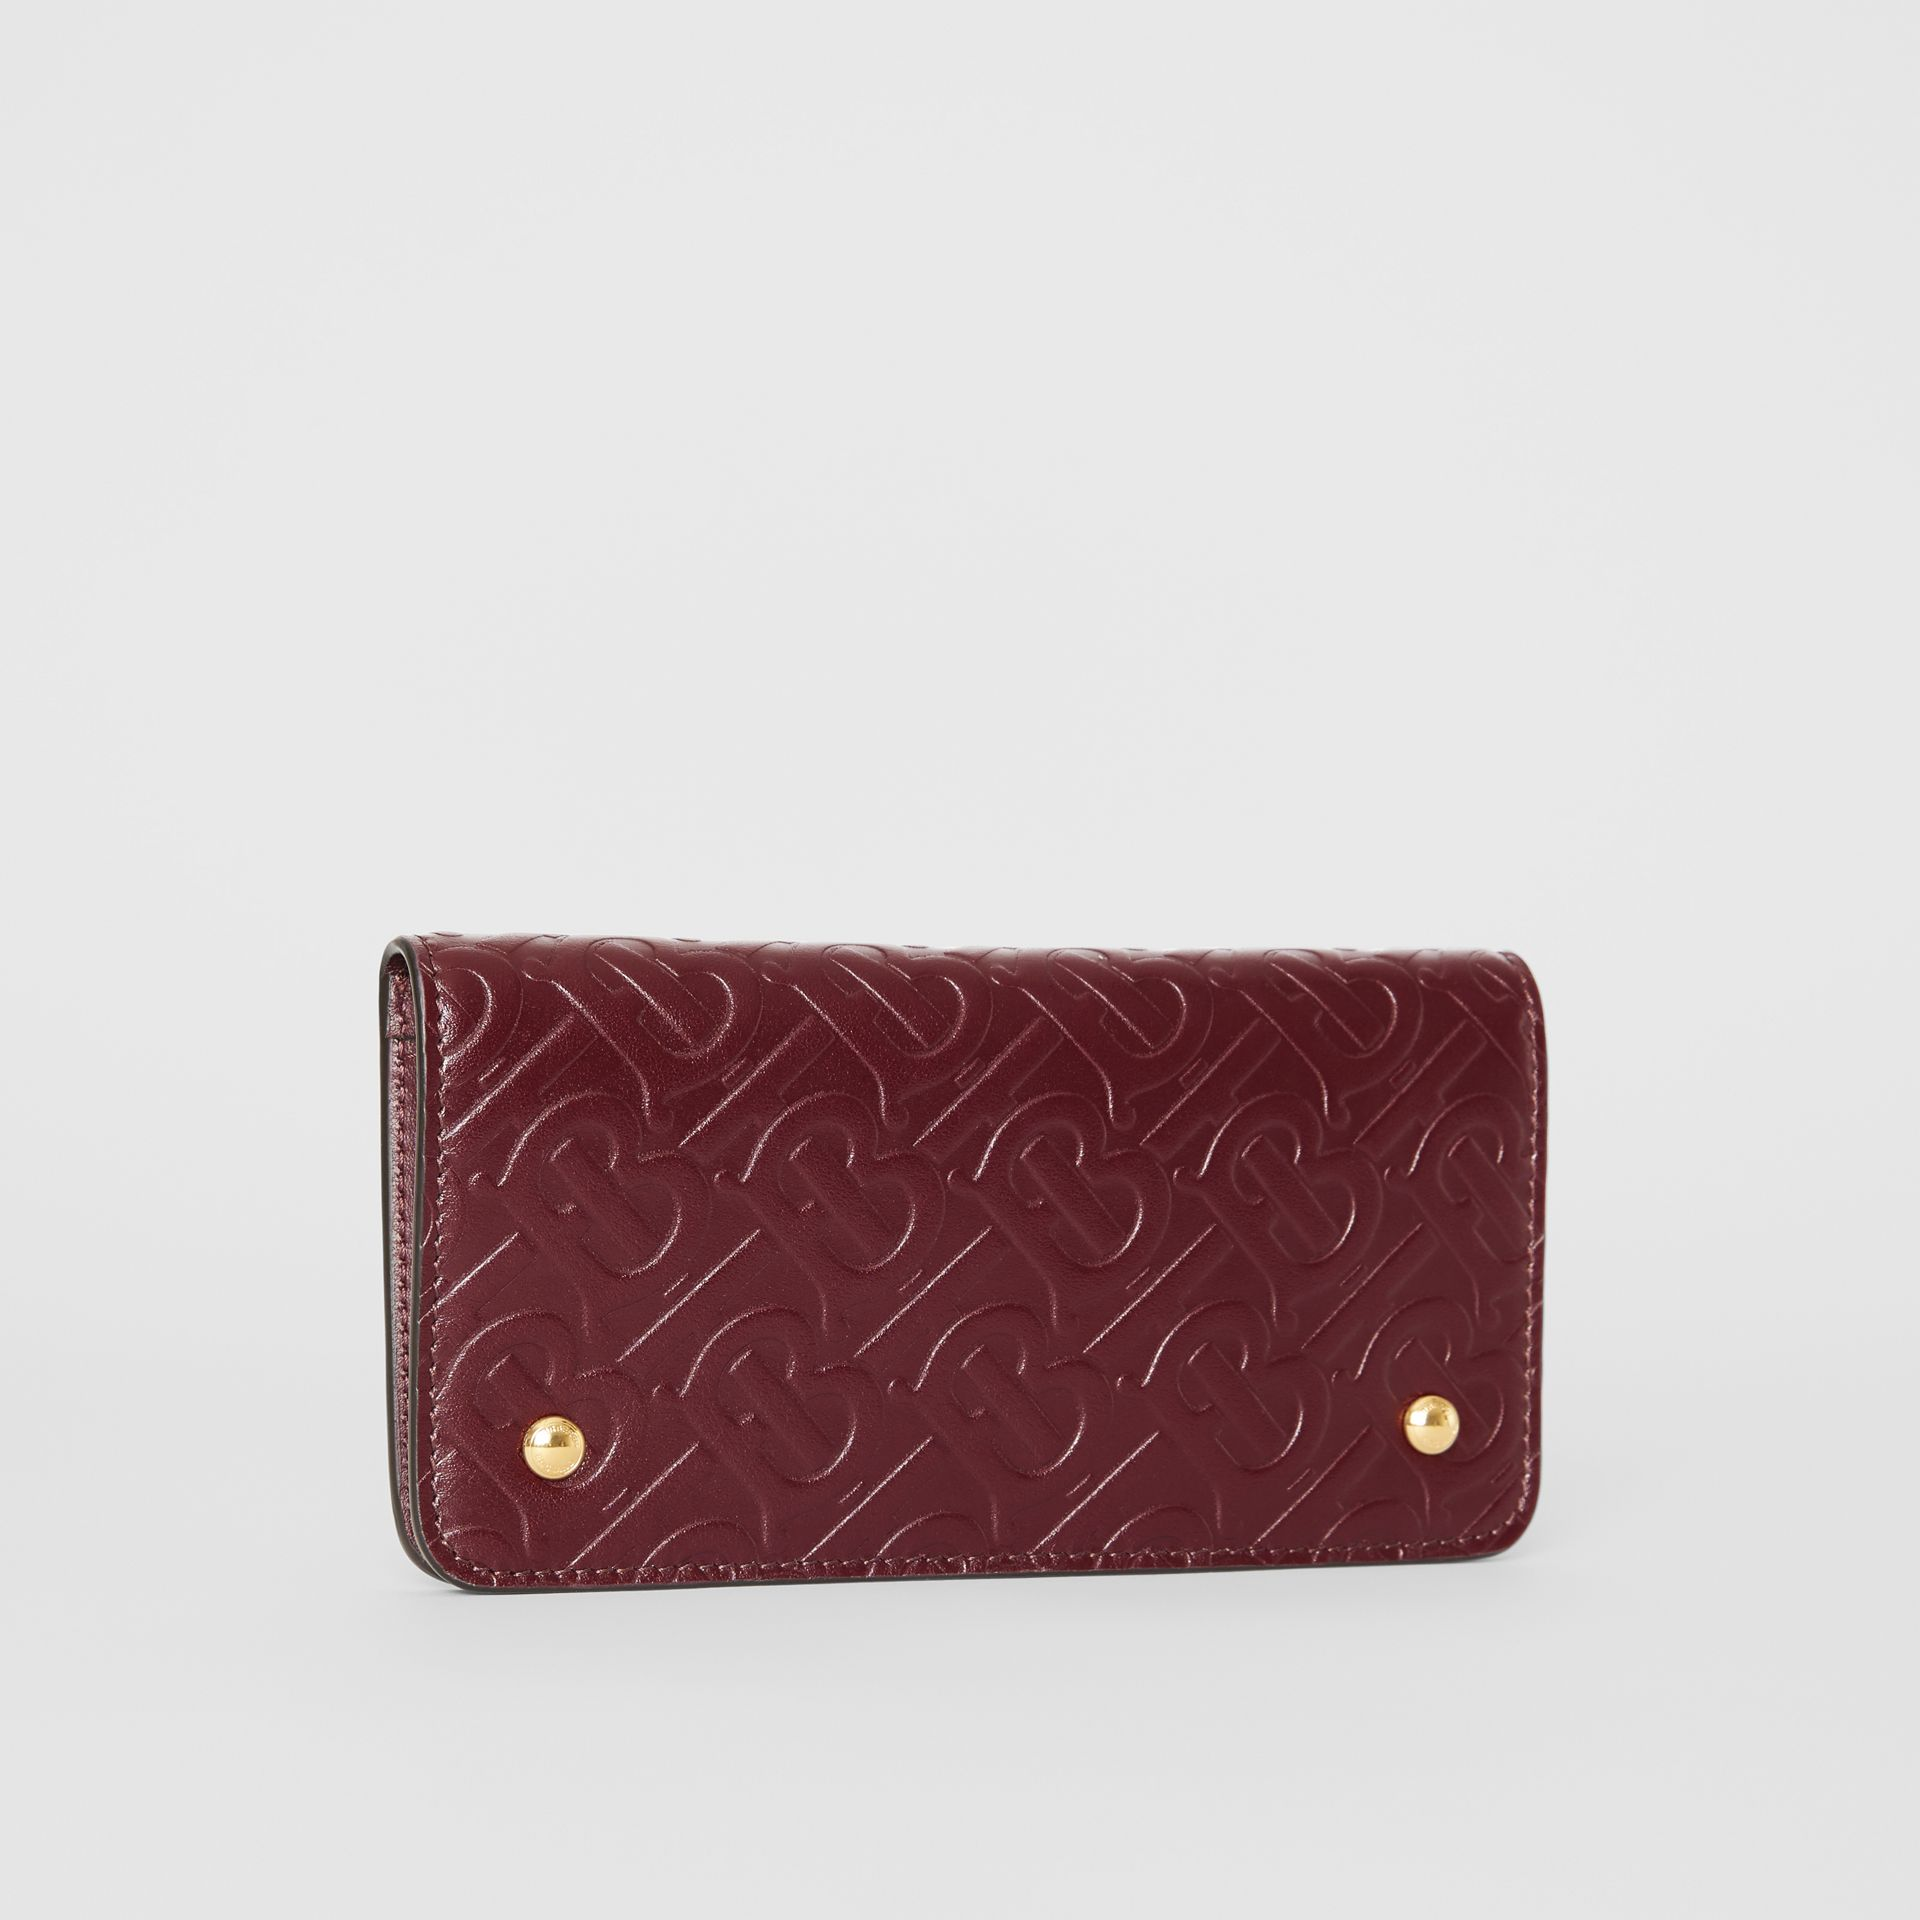 Monogram Leather Phone Wallet in Oxblood | Burberry United Kingdom - gallery image 4